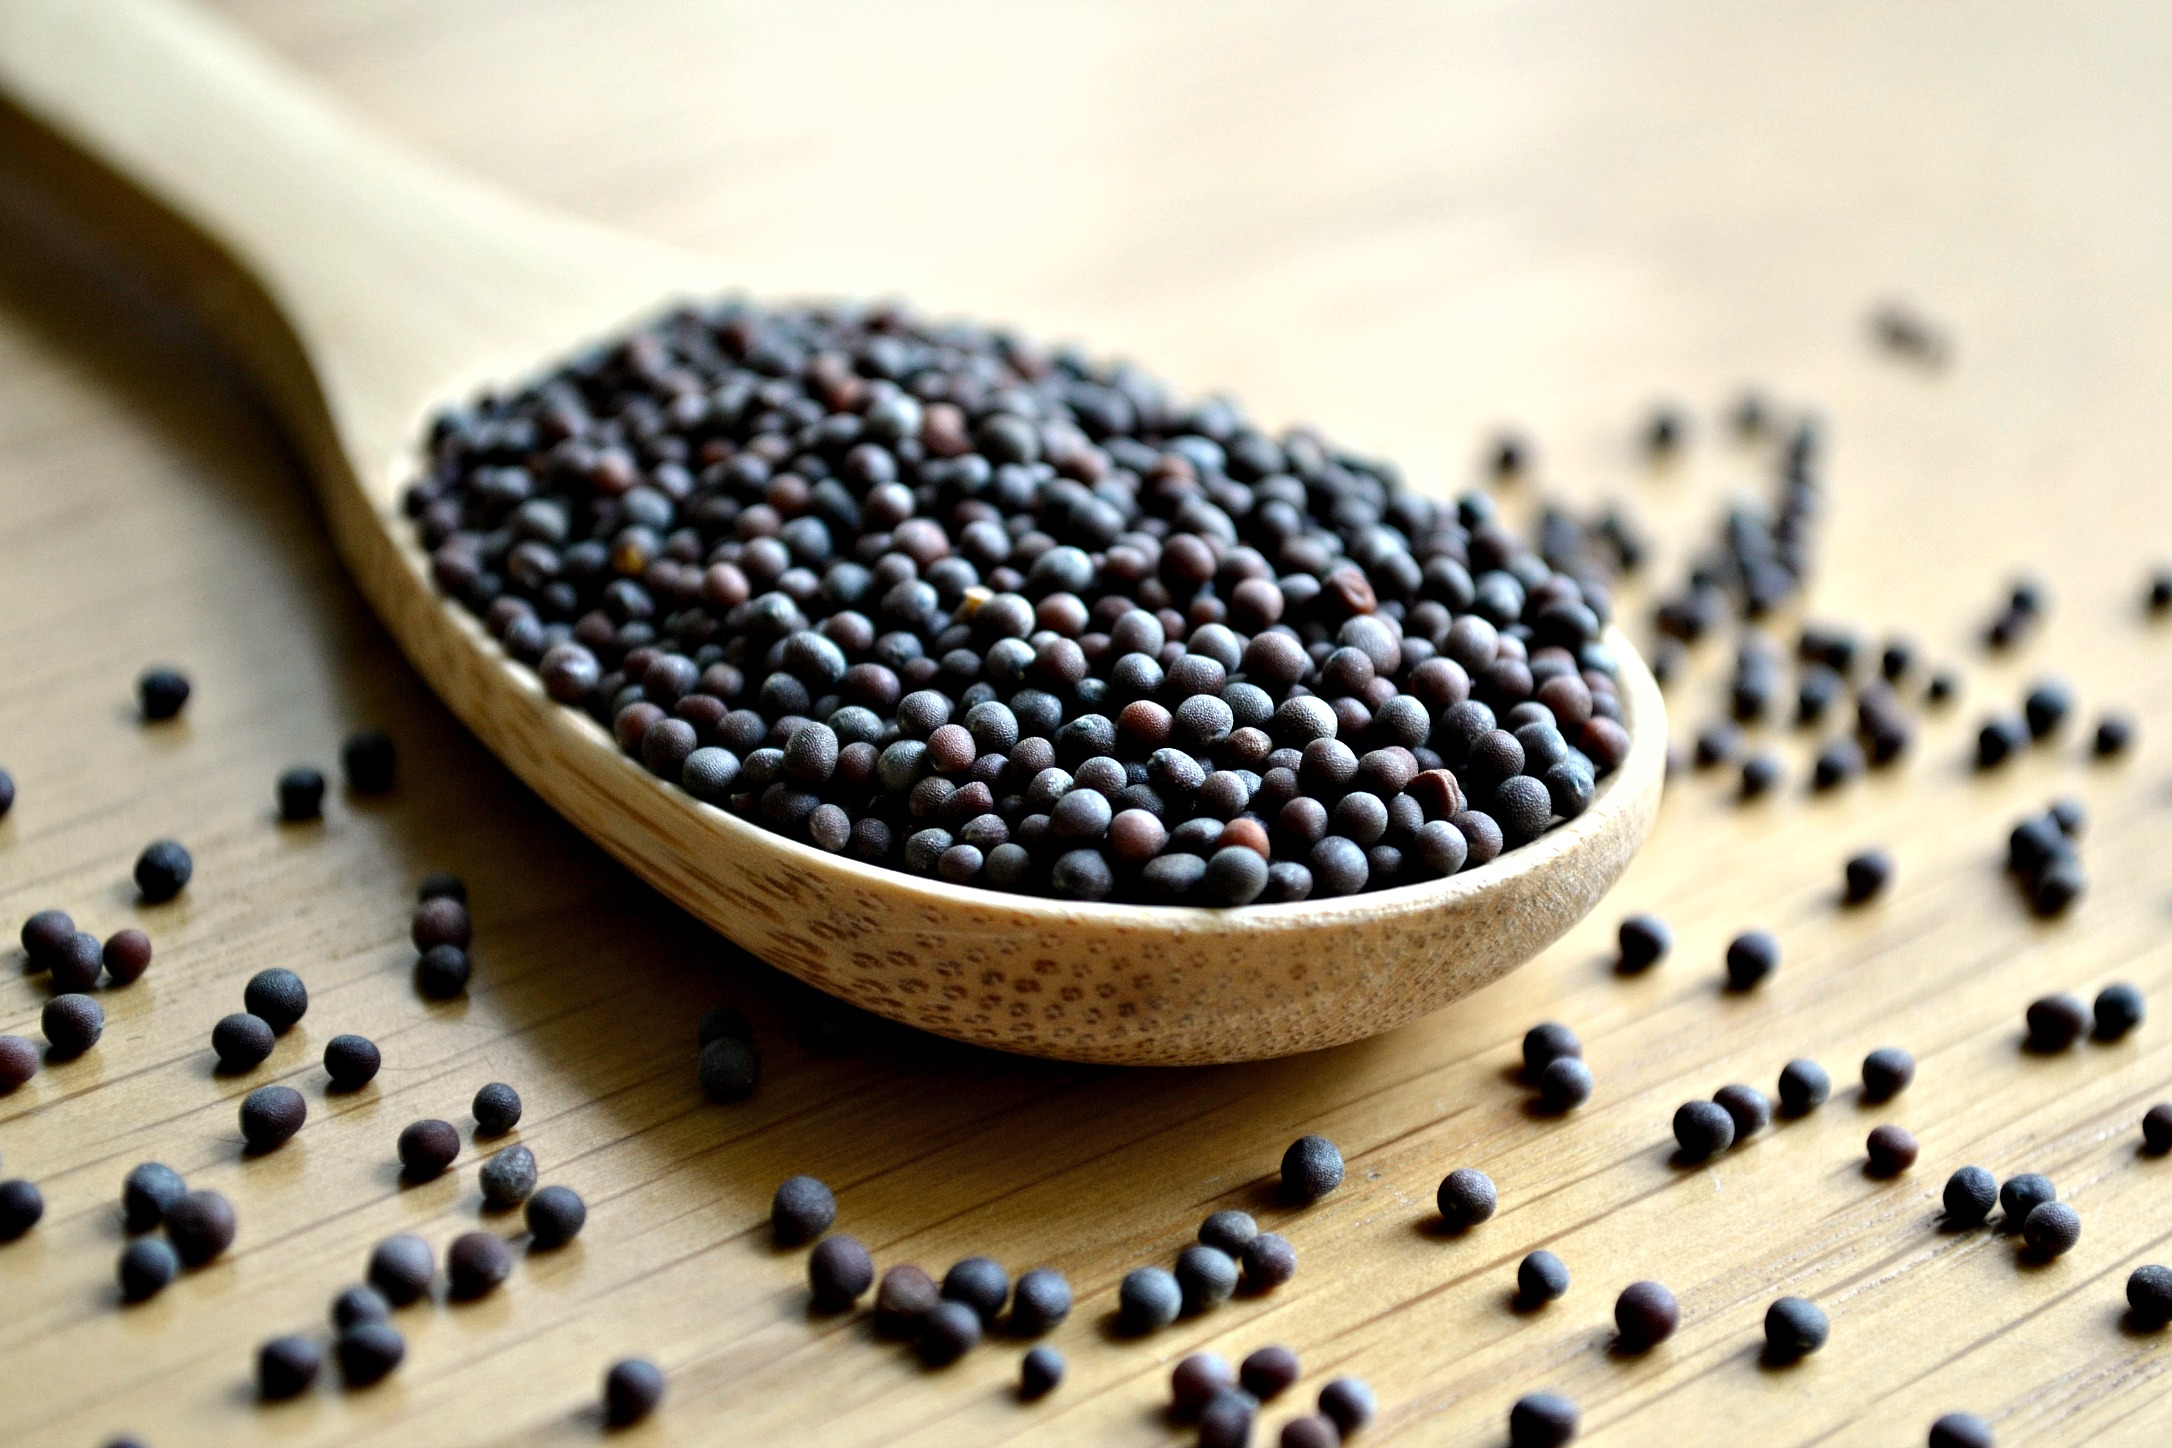 a3d7a7503071 Black Mustard Seeds - Anthony The Spice Maker